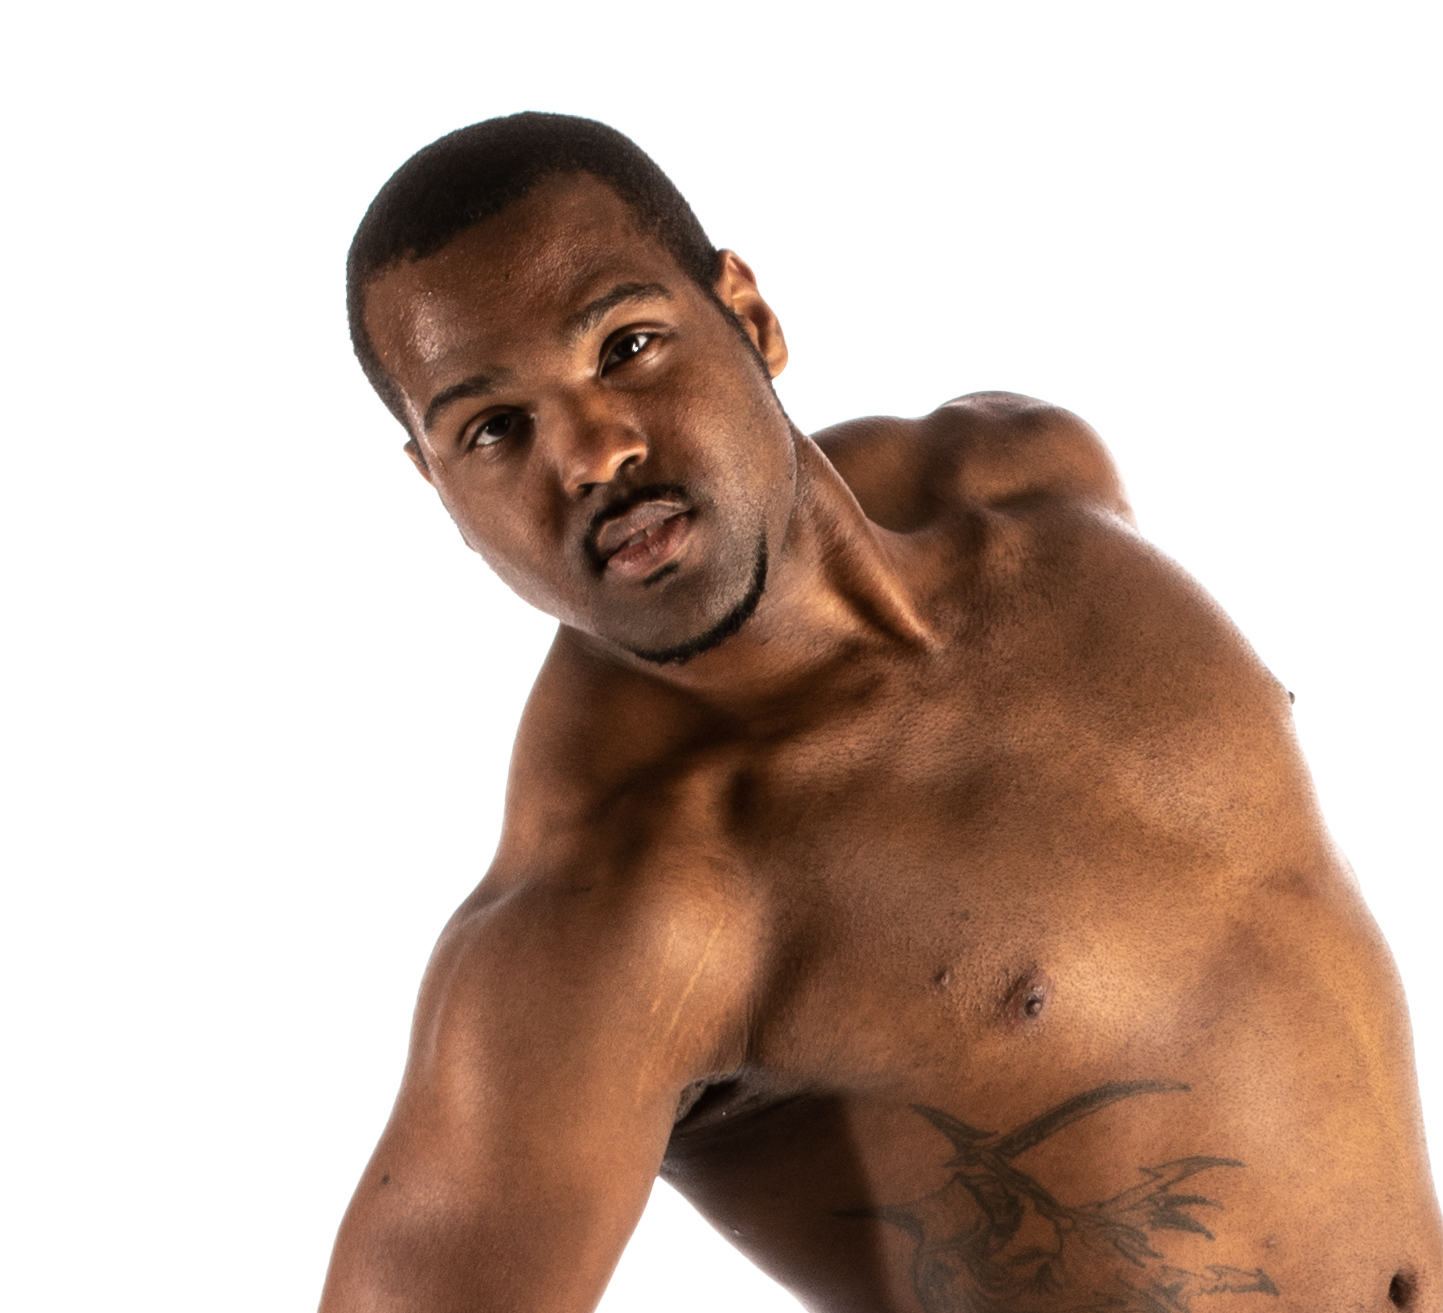 MICHAEL TEASLEY lll, - was born and raised in Detroit, MI. He began his dance training under the Direction of Jeri Sterrett at Jazz and Spirit Dance Theater of Detroit. In 2009, he enrolled in the Dance Program at Oakland University where he performed with Oakland Dance Theatre and OU Repertory Dance Company. Since then he has appeared as an apprentice and guest dancer with Eisenhower Dance, toured to Poland with the Company in July 2014 and was promoted to company member in 2015.